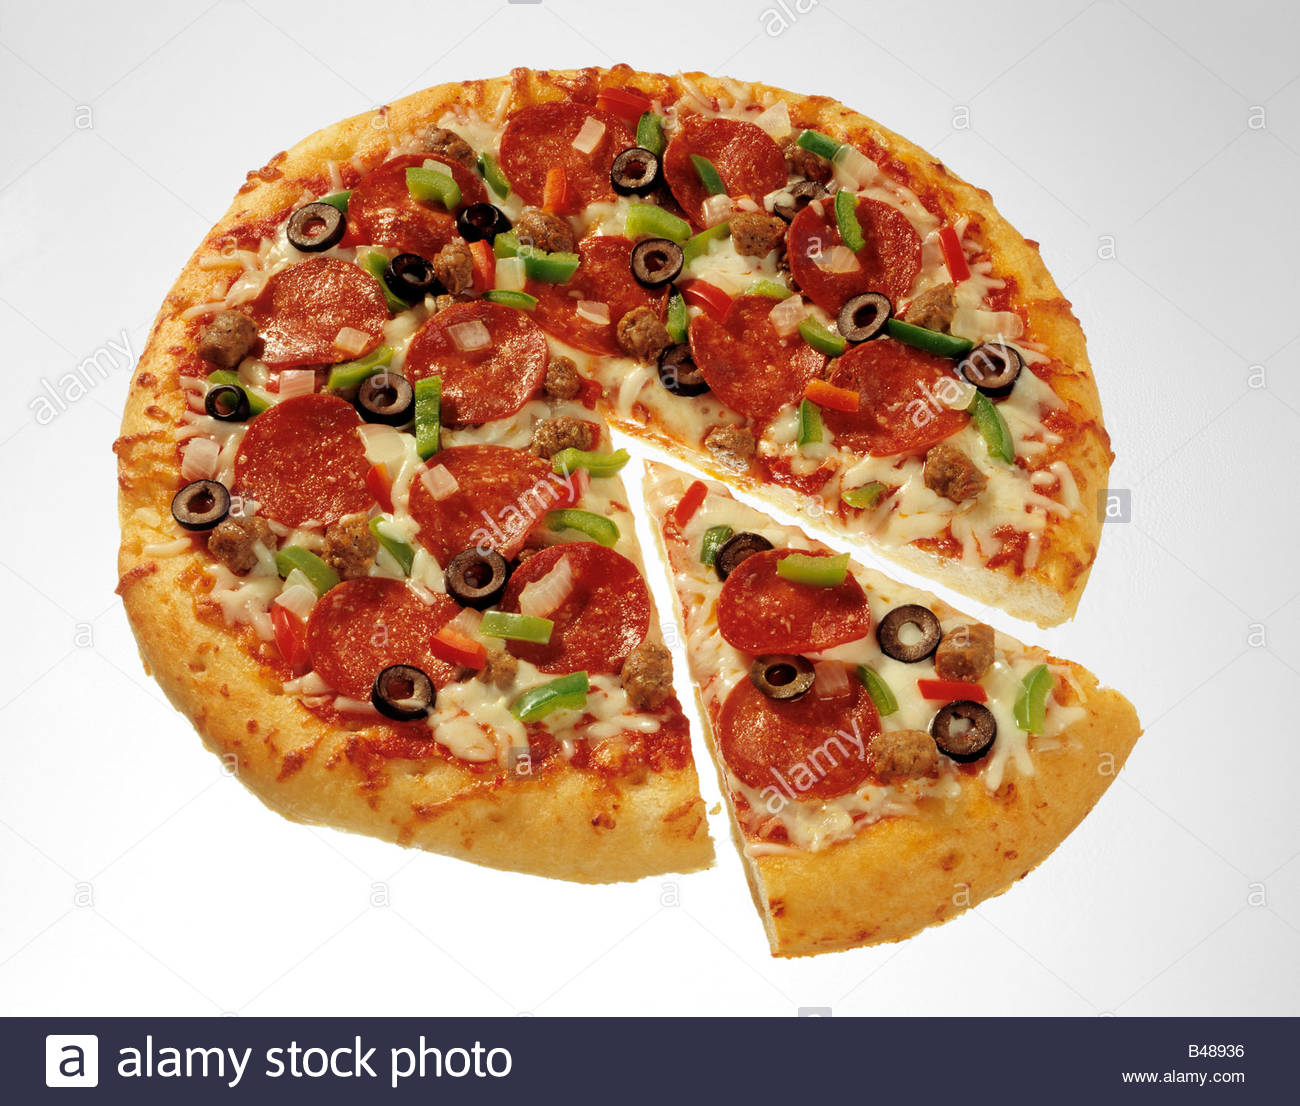 Loaded Pizza Loaded Pizza new photo